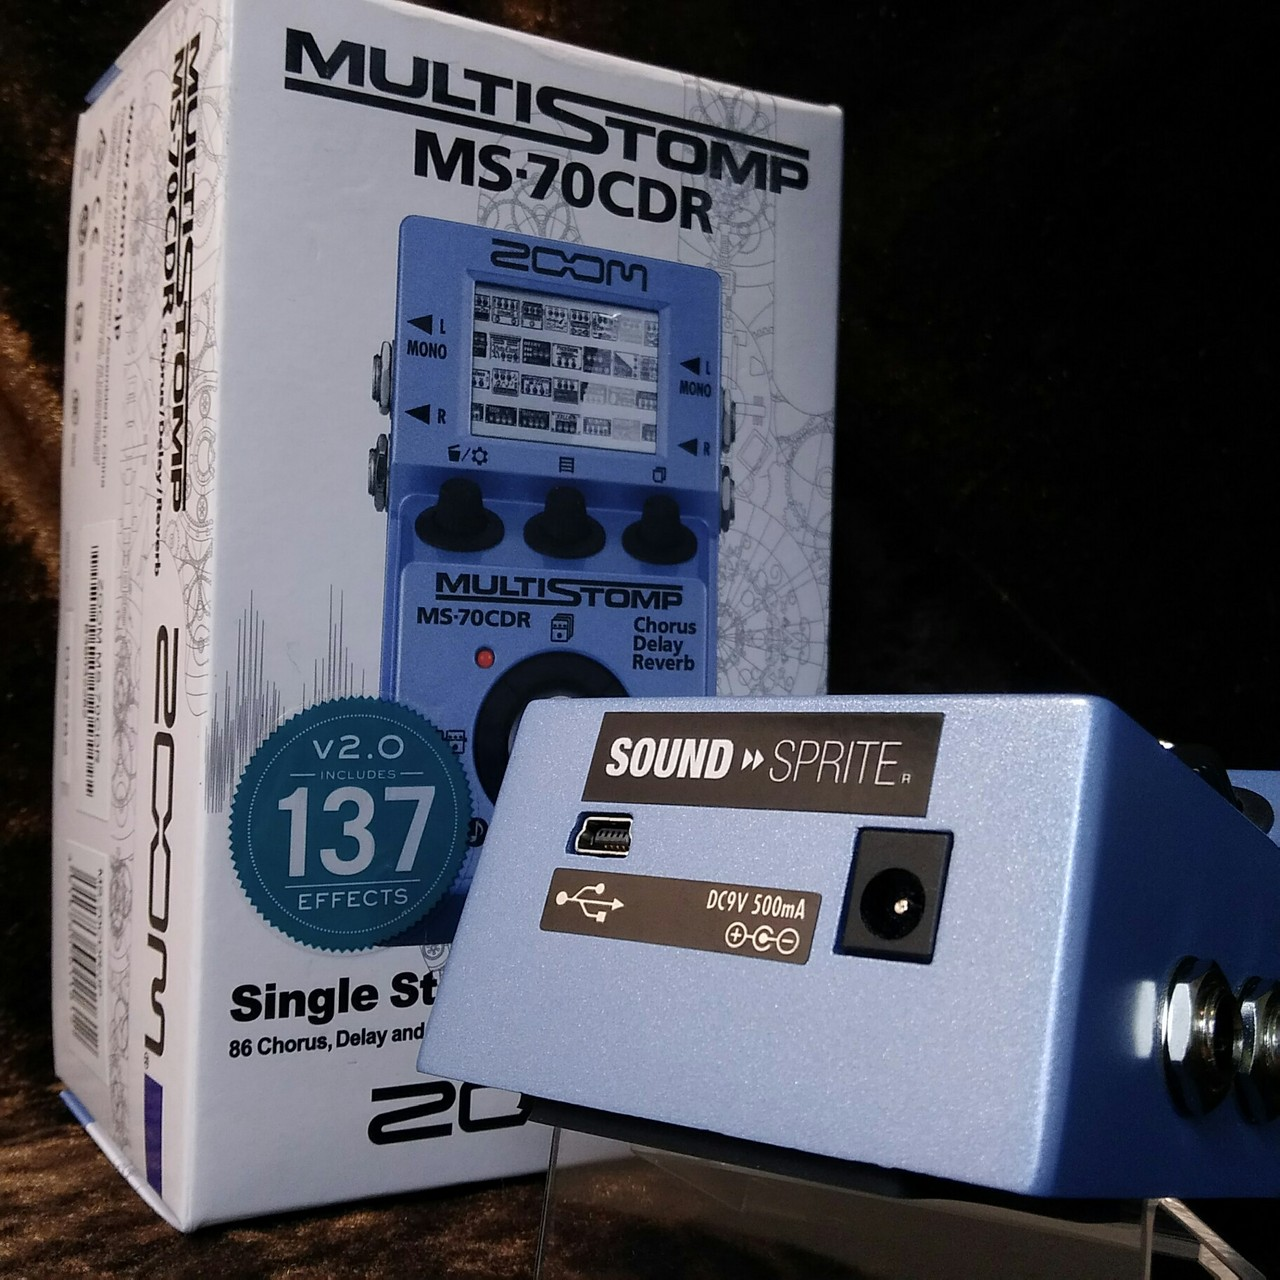 SOUND SPRITE ZOOM MS-70CDR MOD